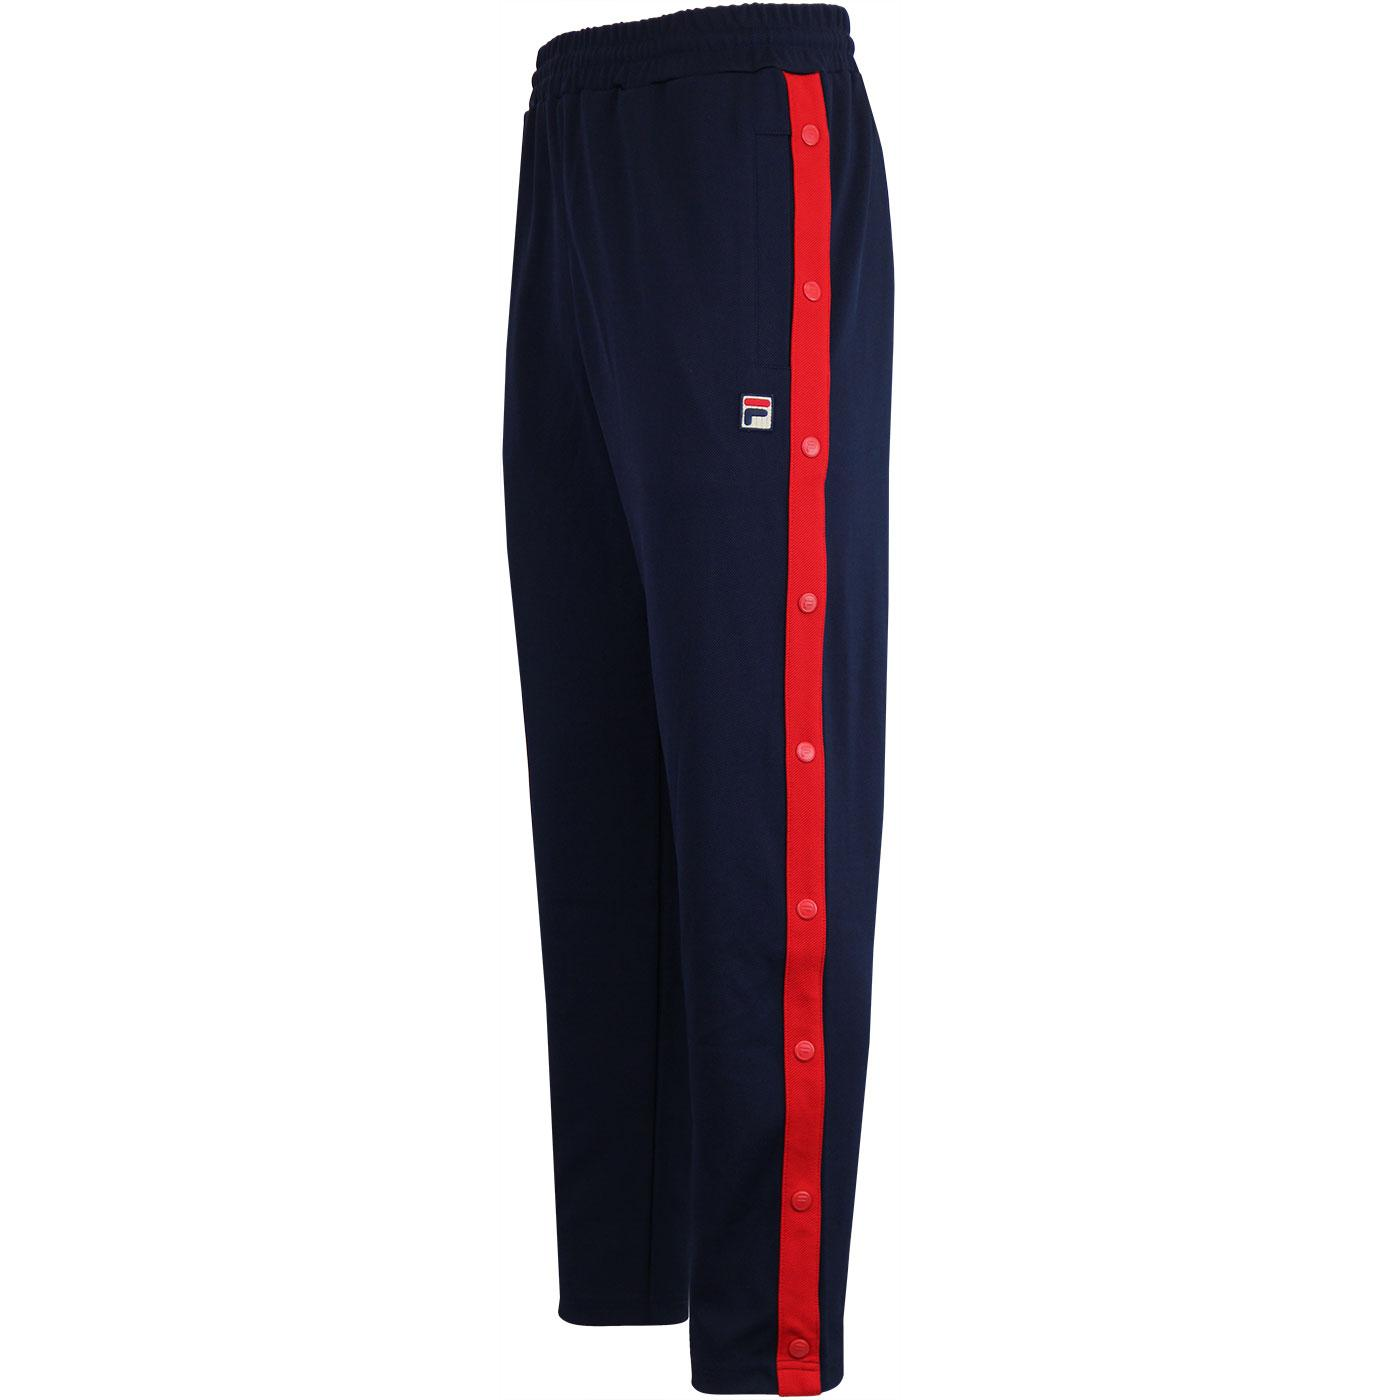 Friars FILA VINTAGE High Waist Twill Track Bottoms